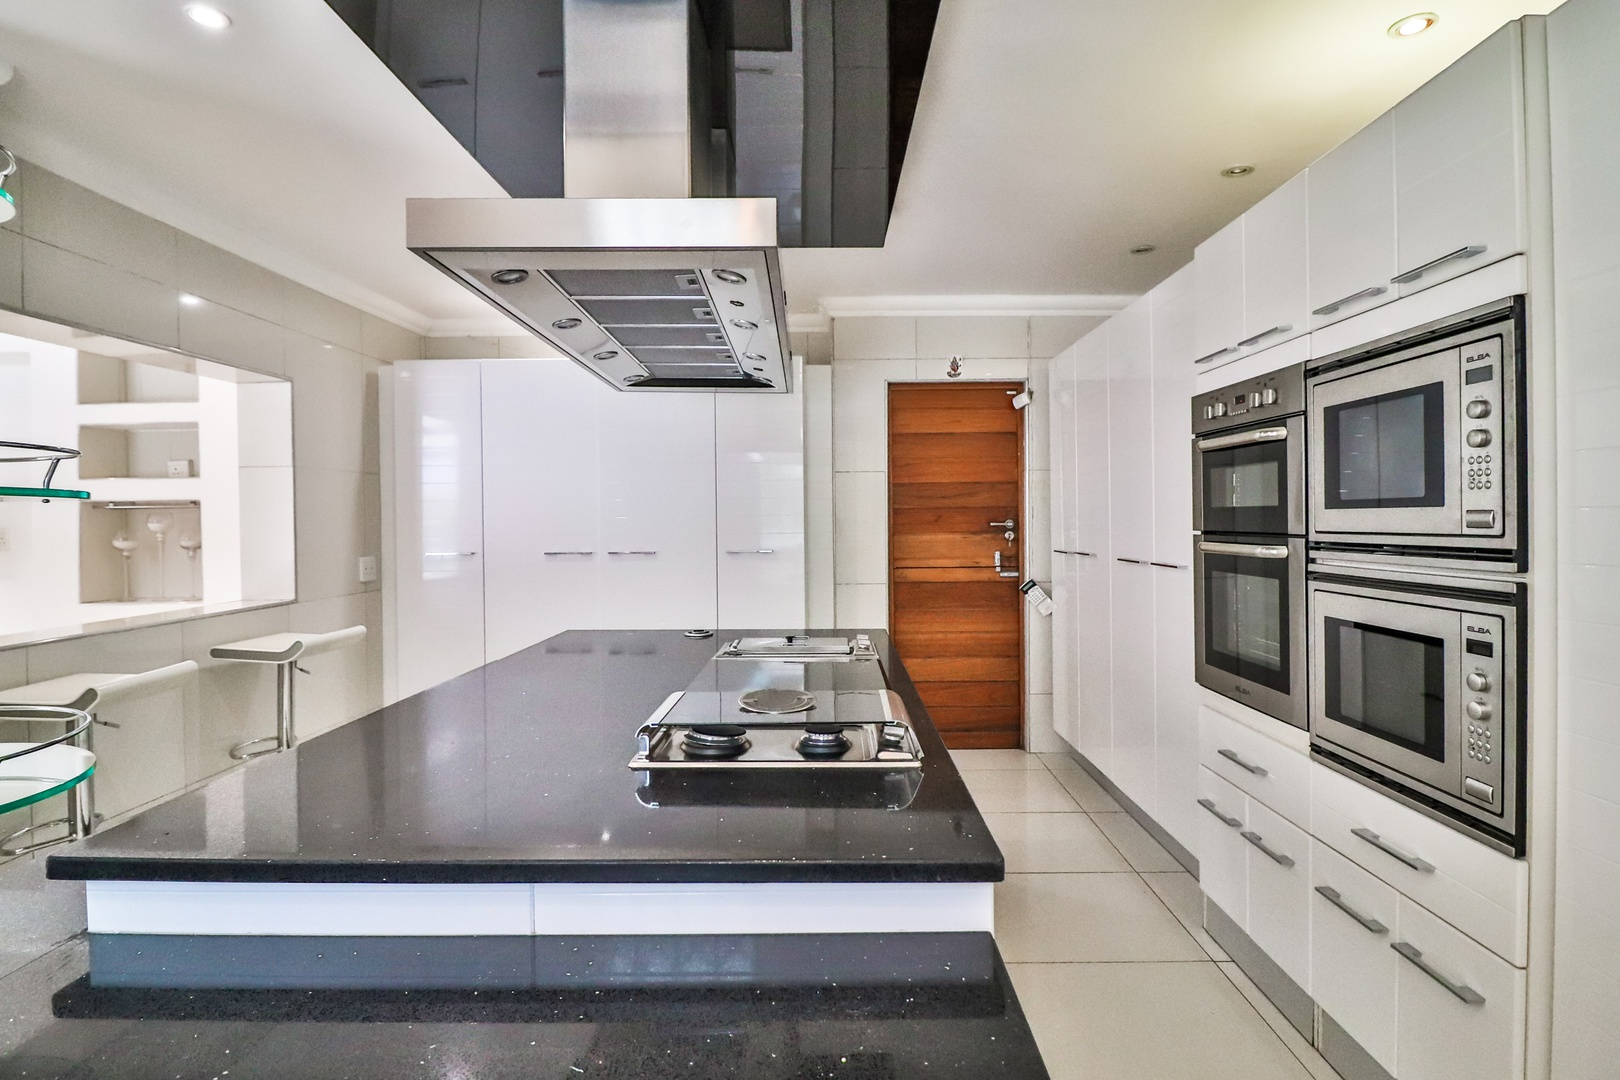 House in Kosmos Village - Kitchen has top of the range finishes